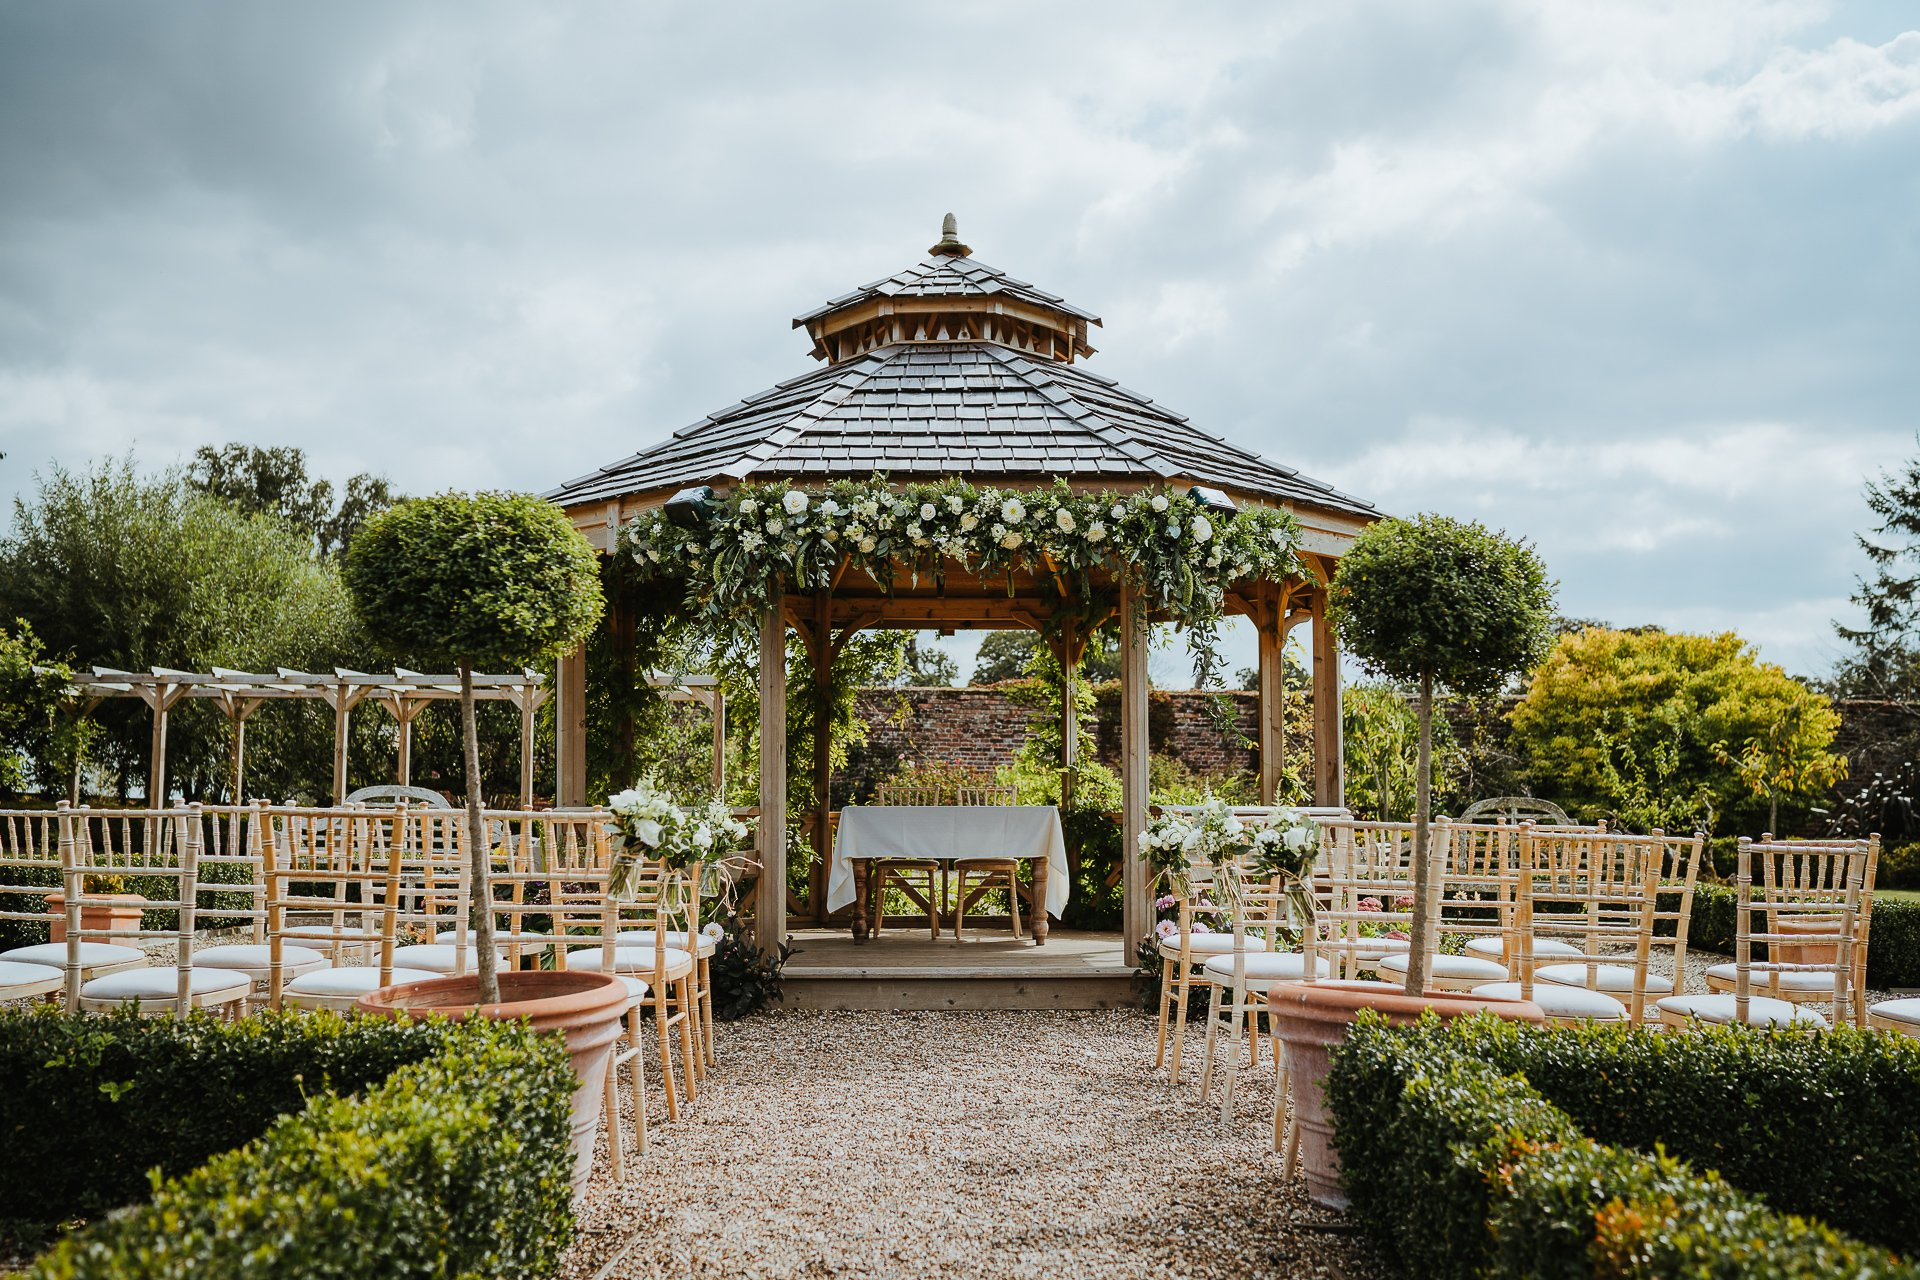 Wedding ceremony gazebo decorated in white and green flowers